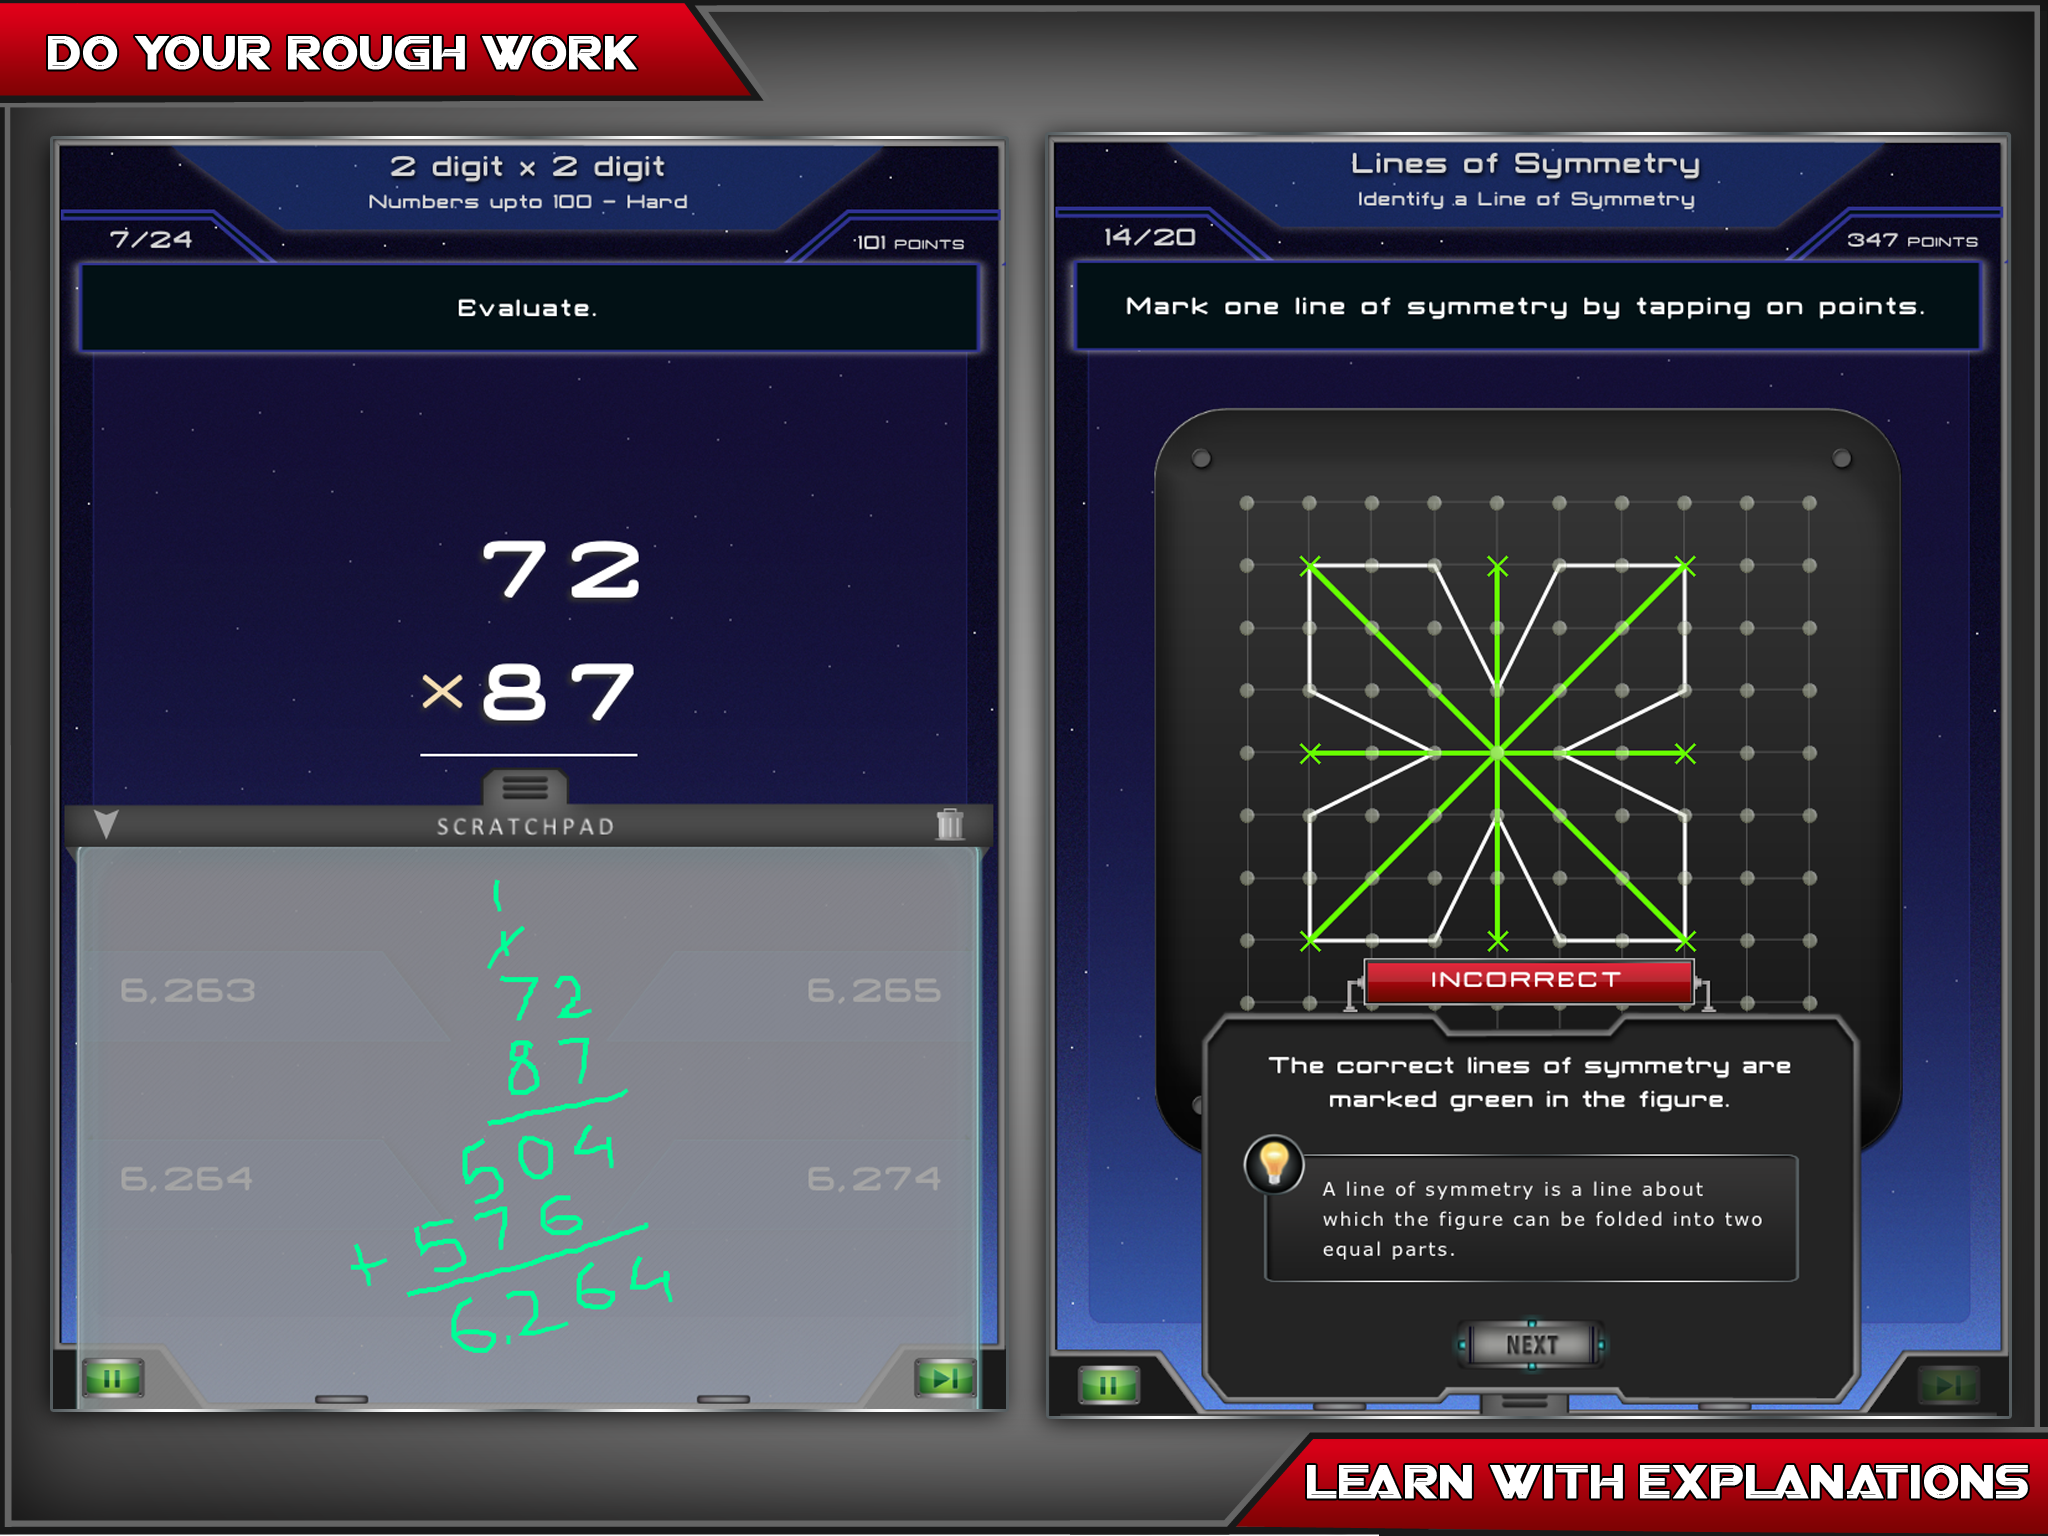 With 140 Adaptive Worksheets With Virtually Infinite